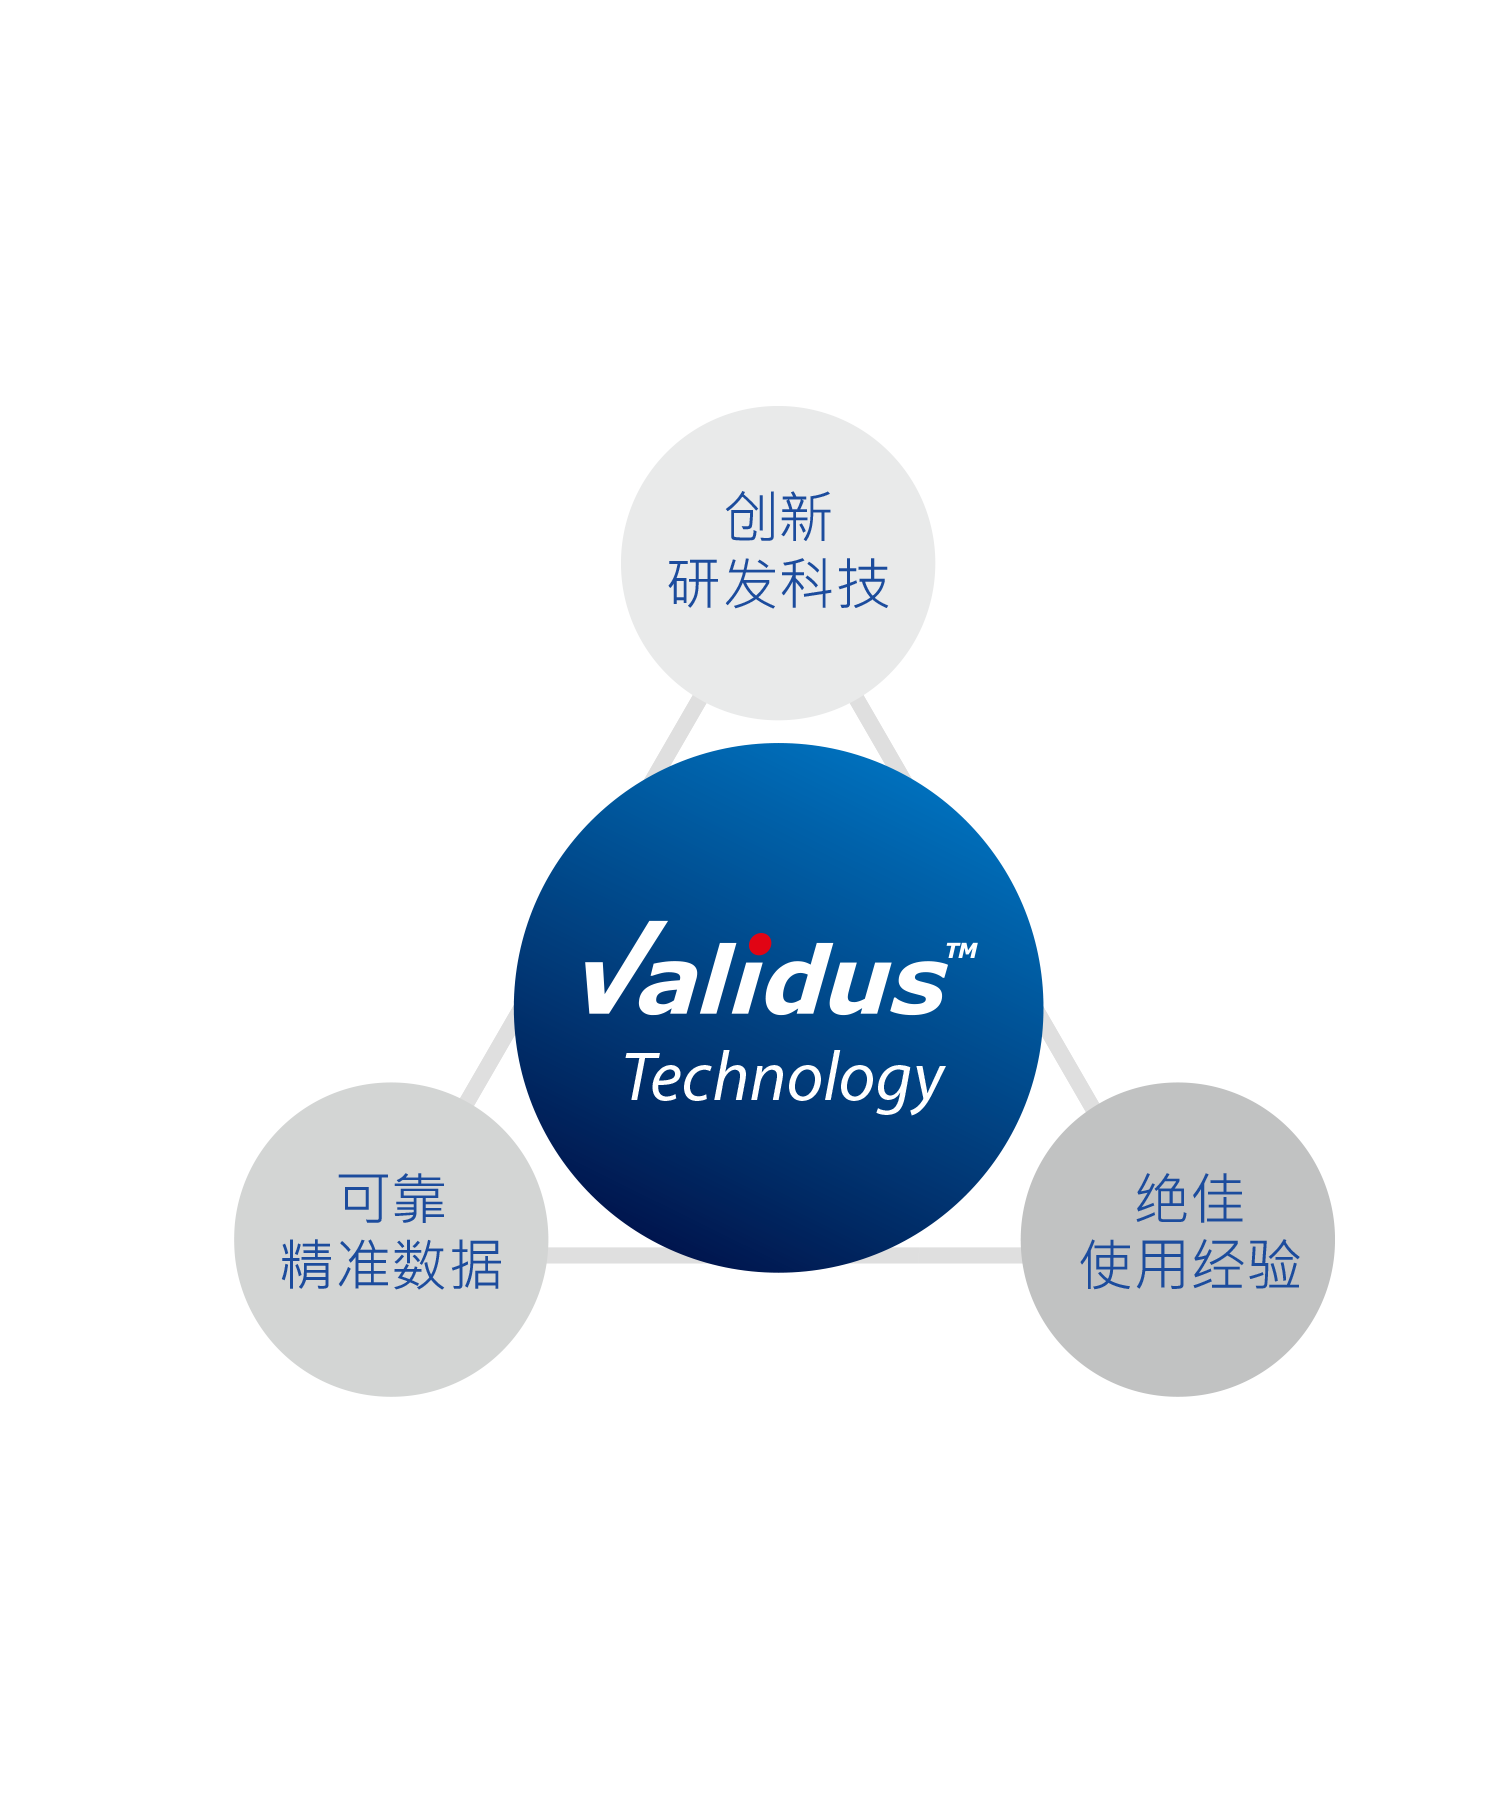 pro-img/15 17 Validus technology and strips/Validus_產品圖_CN.png